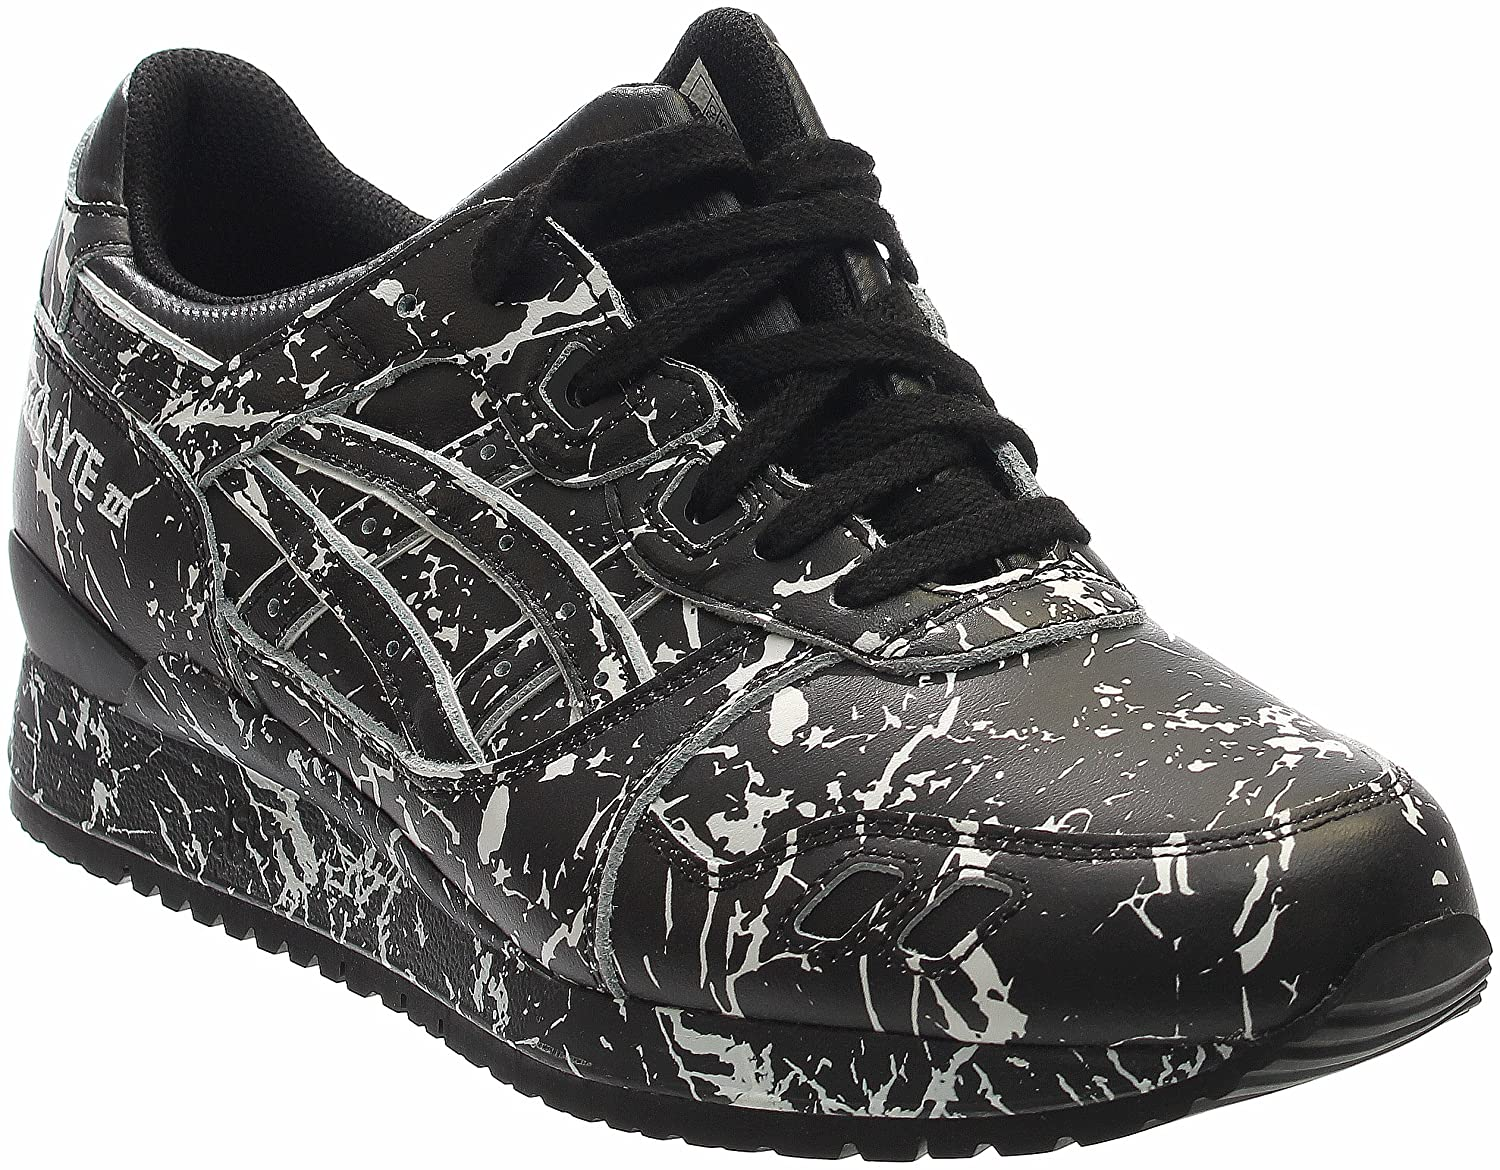 ASICS Men's Gel-Lyte III Running Shoe B016X57CJ2 11.5 M US Women / 10 M US Men|Black